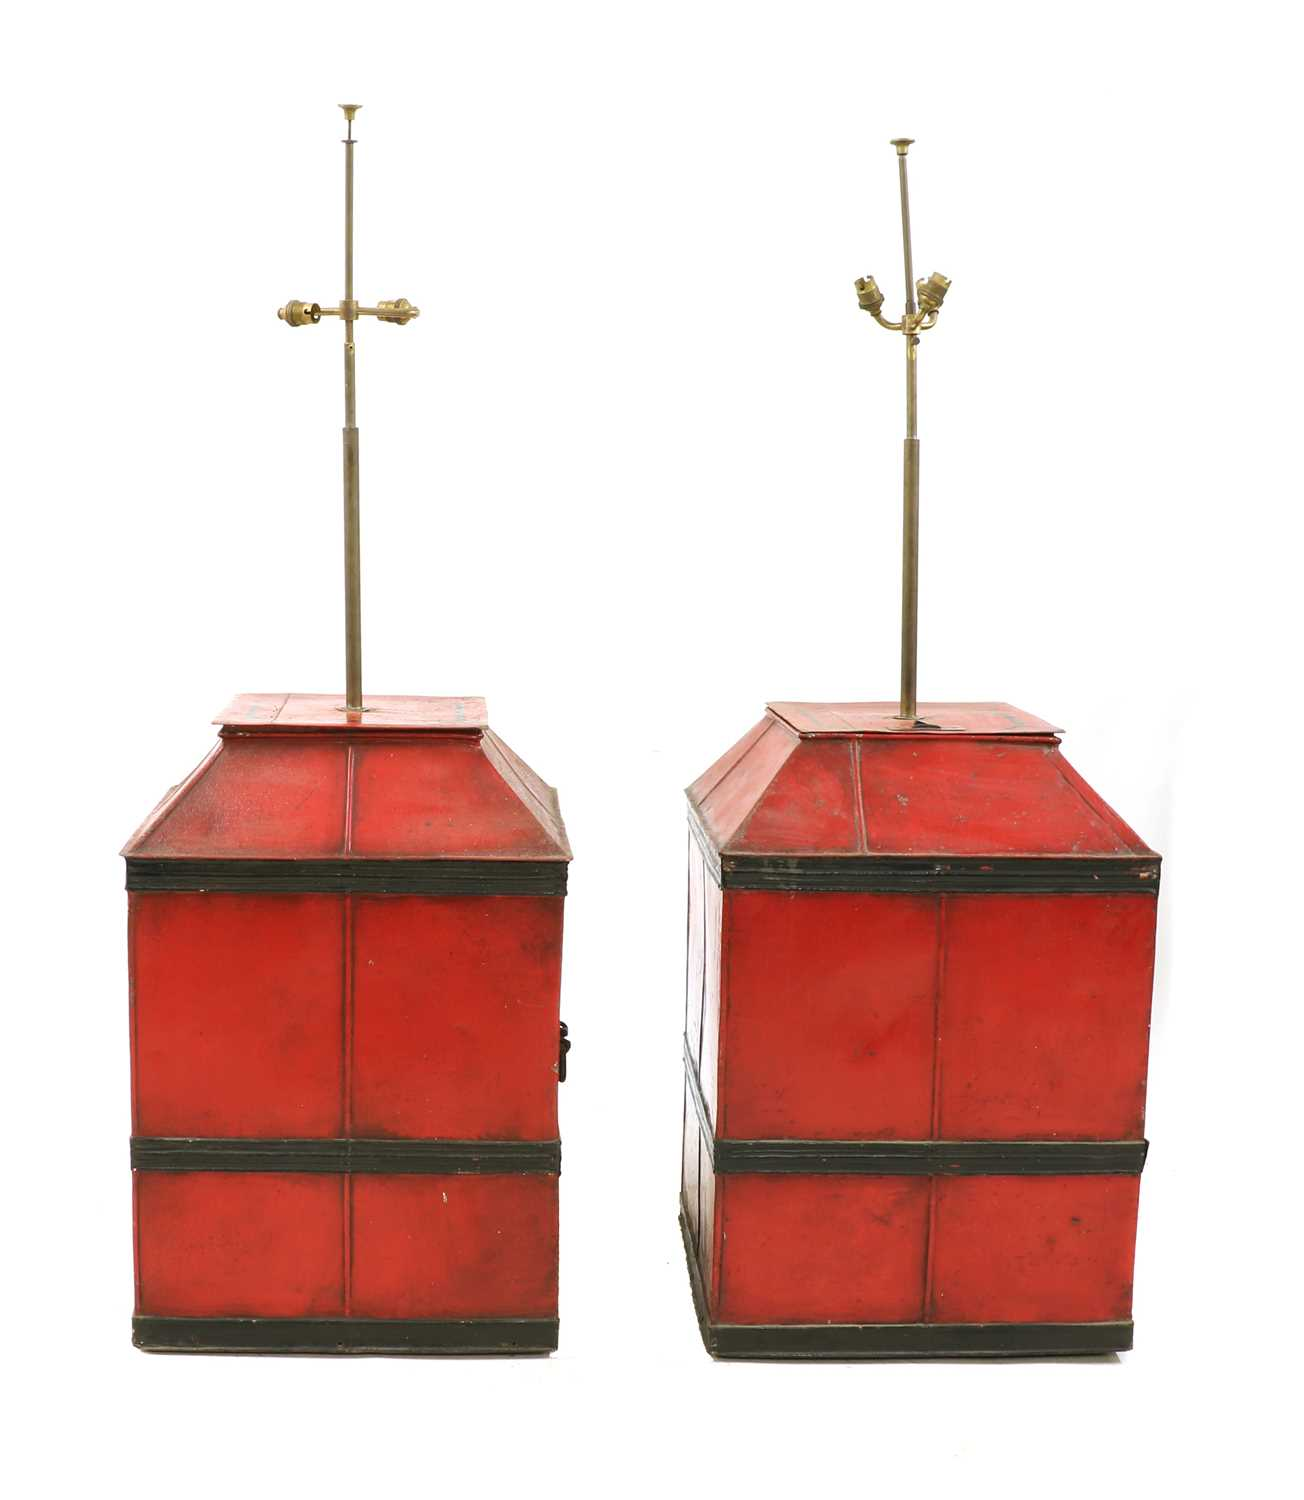 Lot 89 - Two painted tin containers